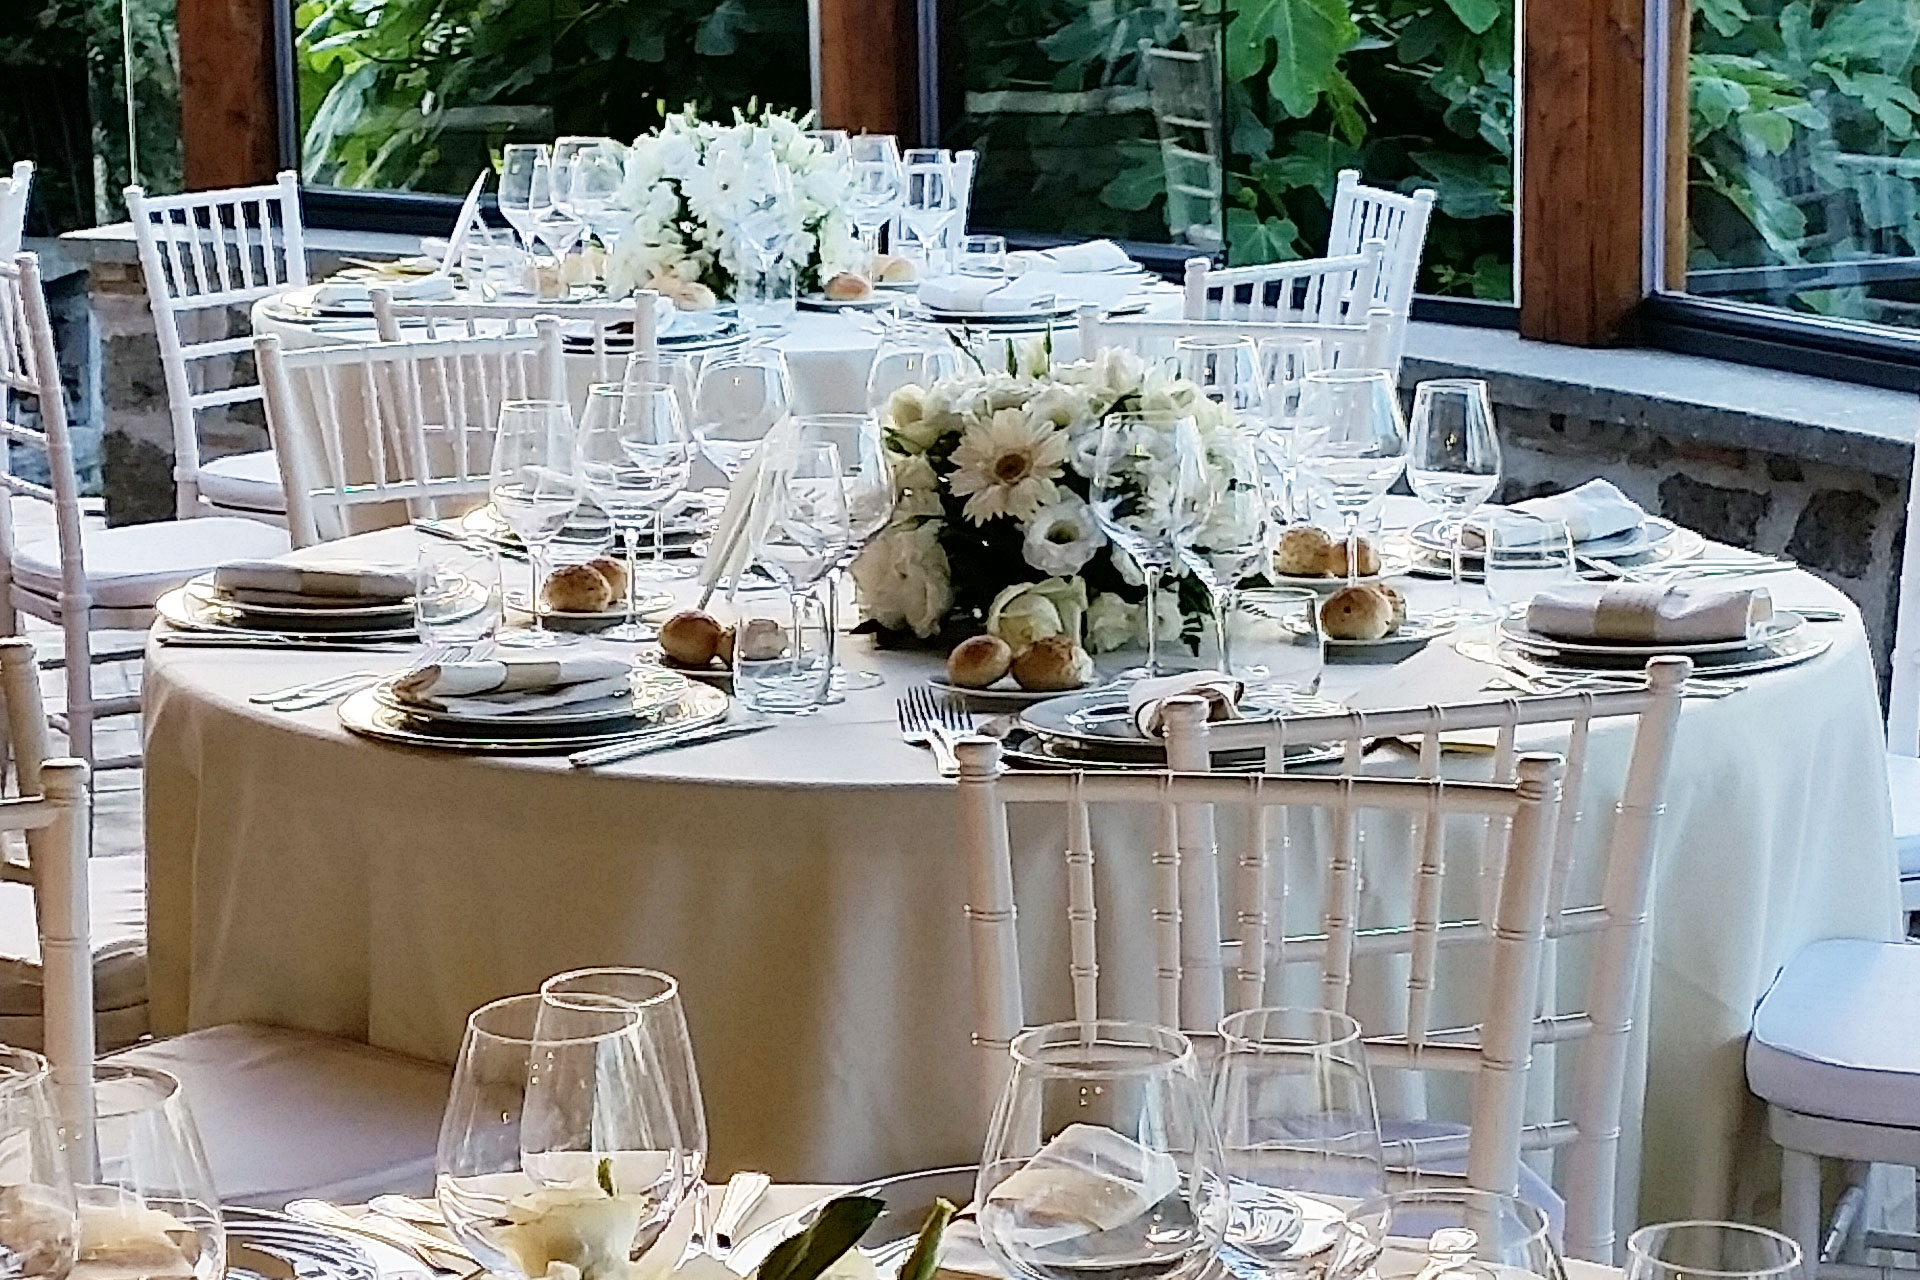 Matrimonio Country Chic Firenze : Matrimonio country chic wn regardsdefemmes